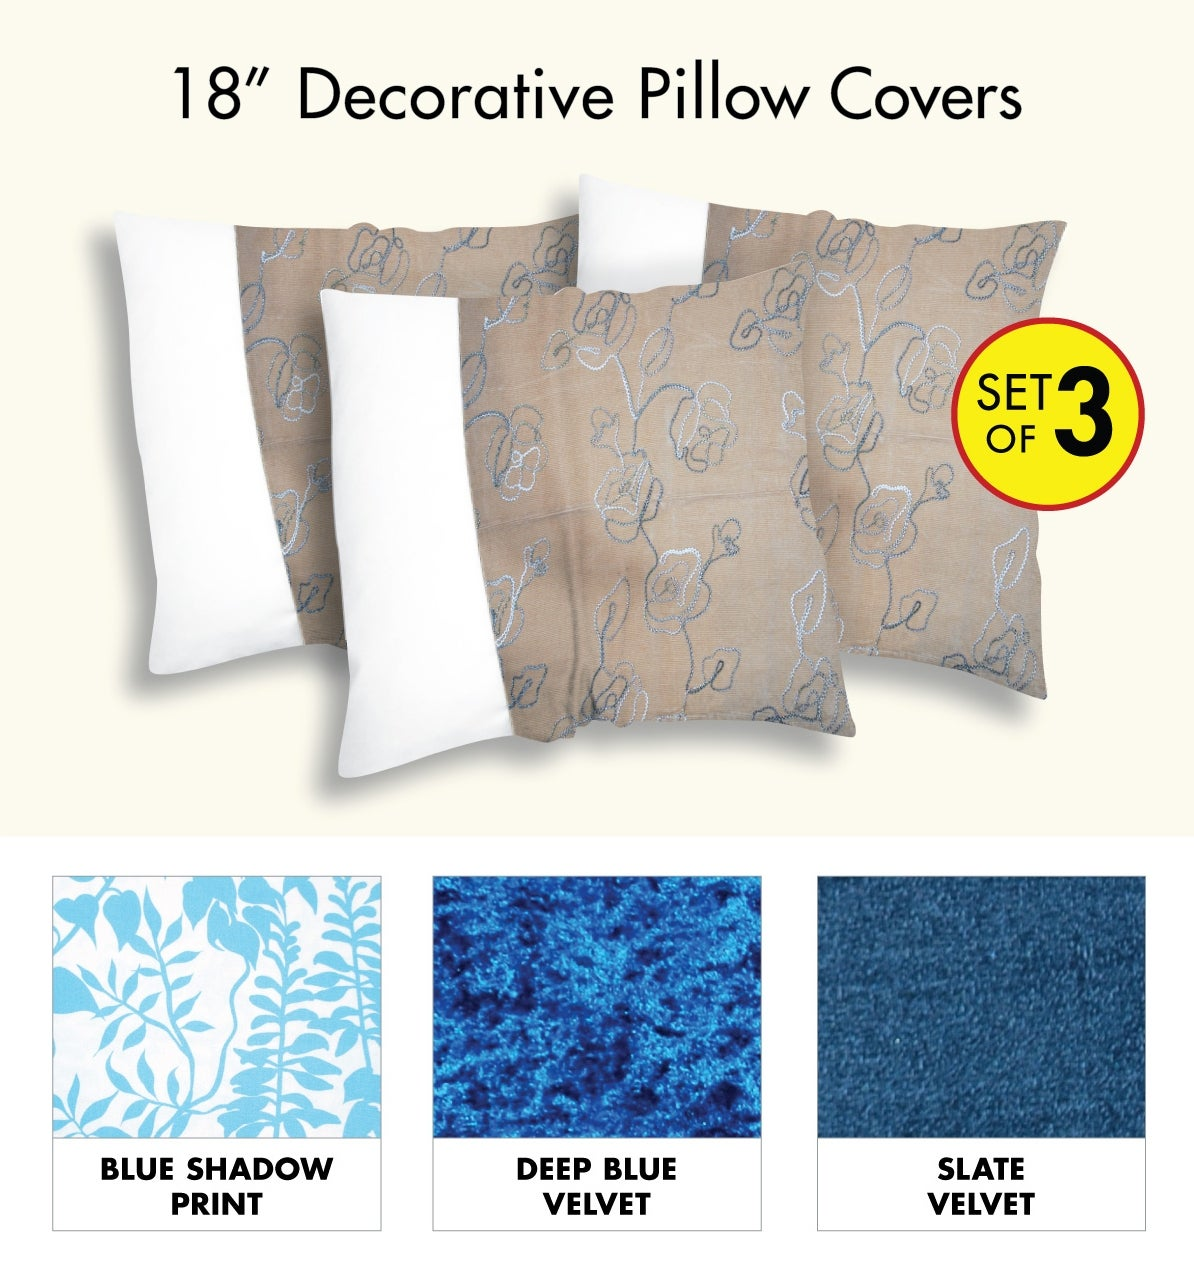 Decorative Multicolored Pillow Cover (Set of 3)